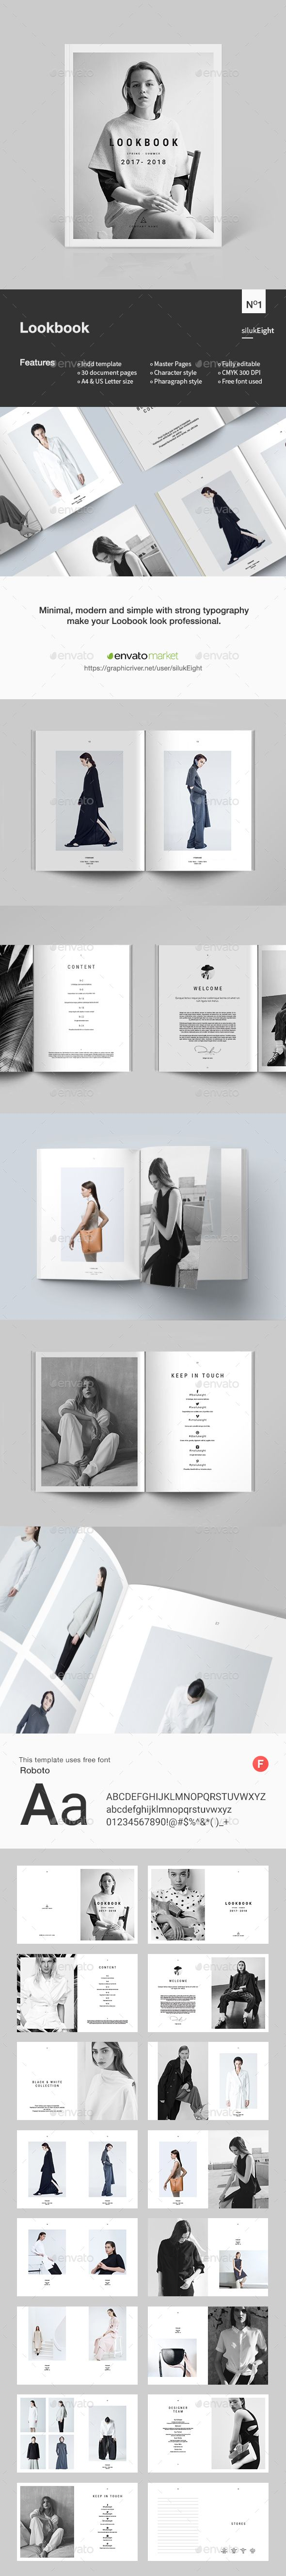 Lookbook — InDesign INDD #portfolio #clothing • Download ➝ https://graphicriver.net/item/lookbook/19527313?ref=pxcr